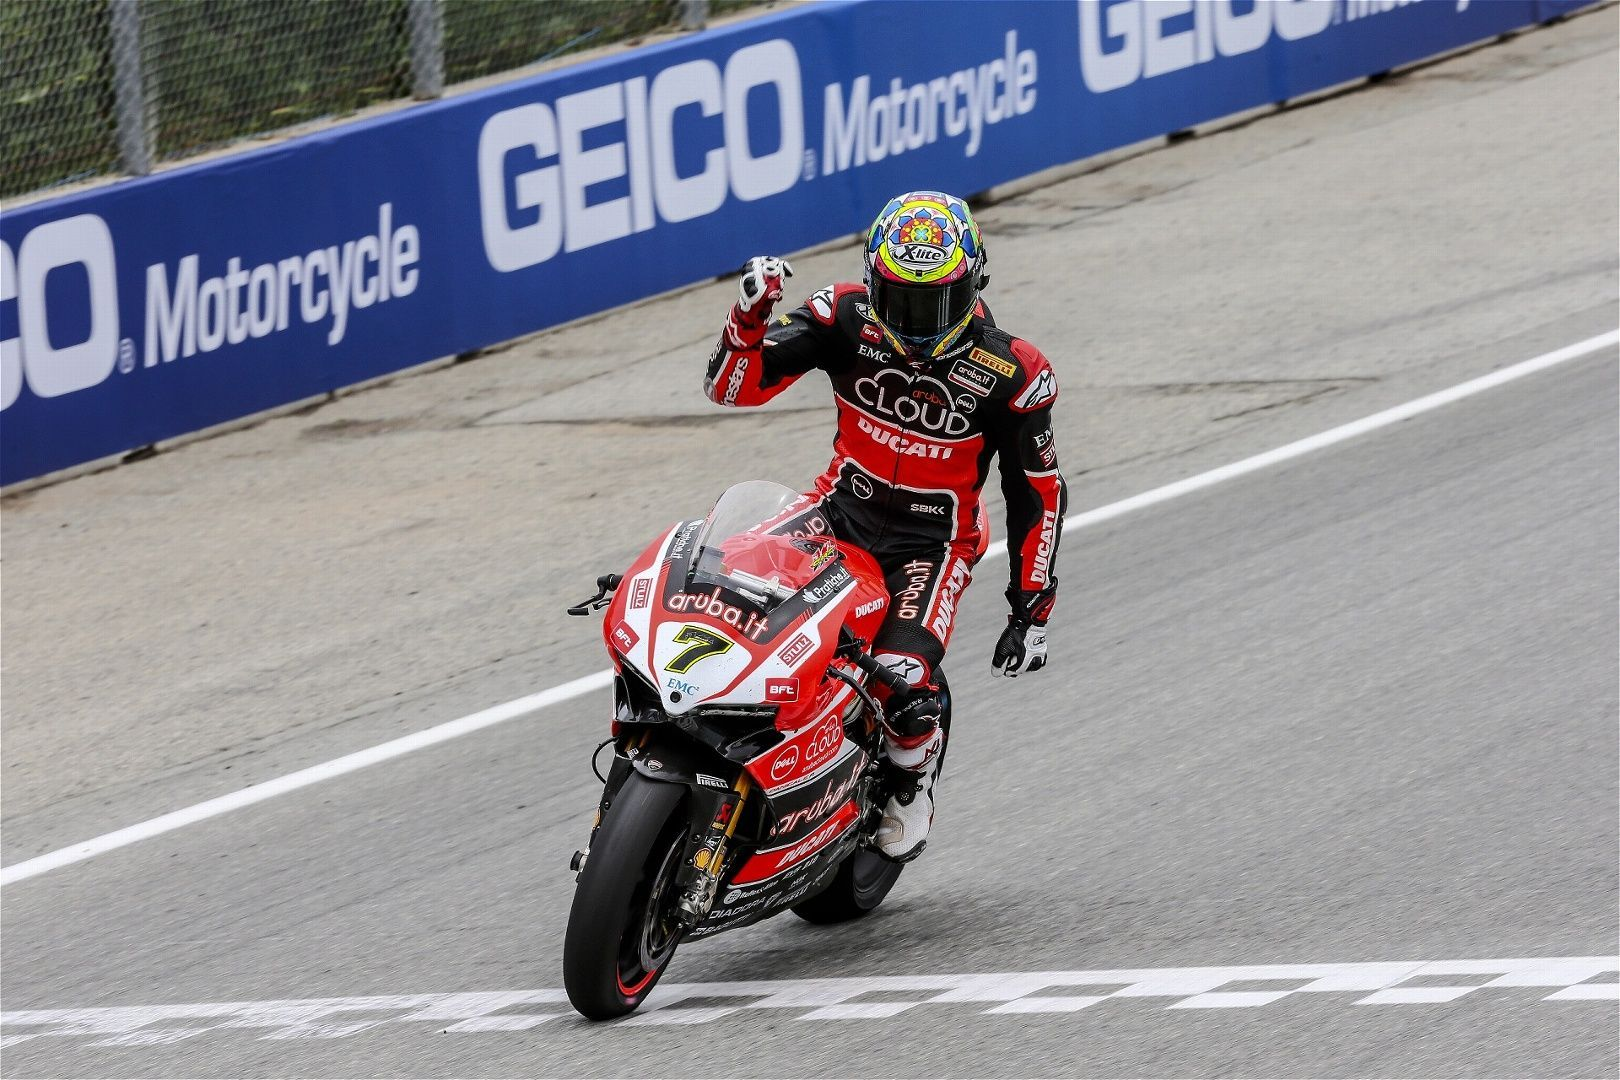 2015 Ducati Panigale R | Chaz Davies wins both rounds at Laguna Seca